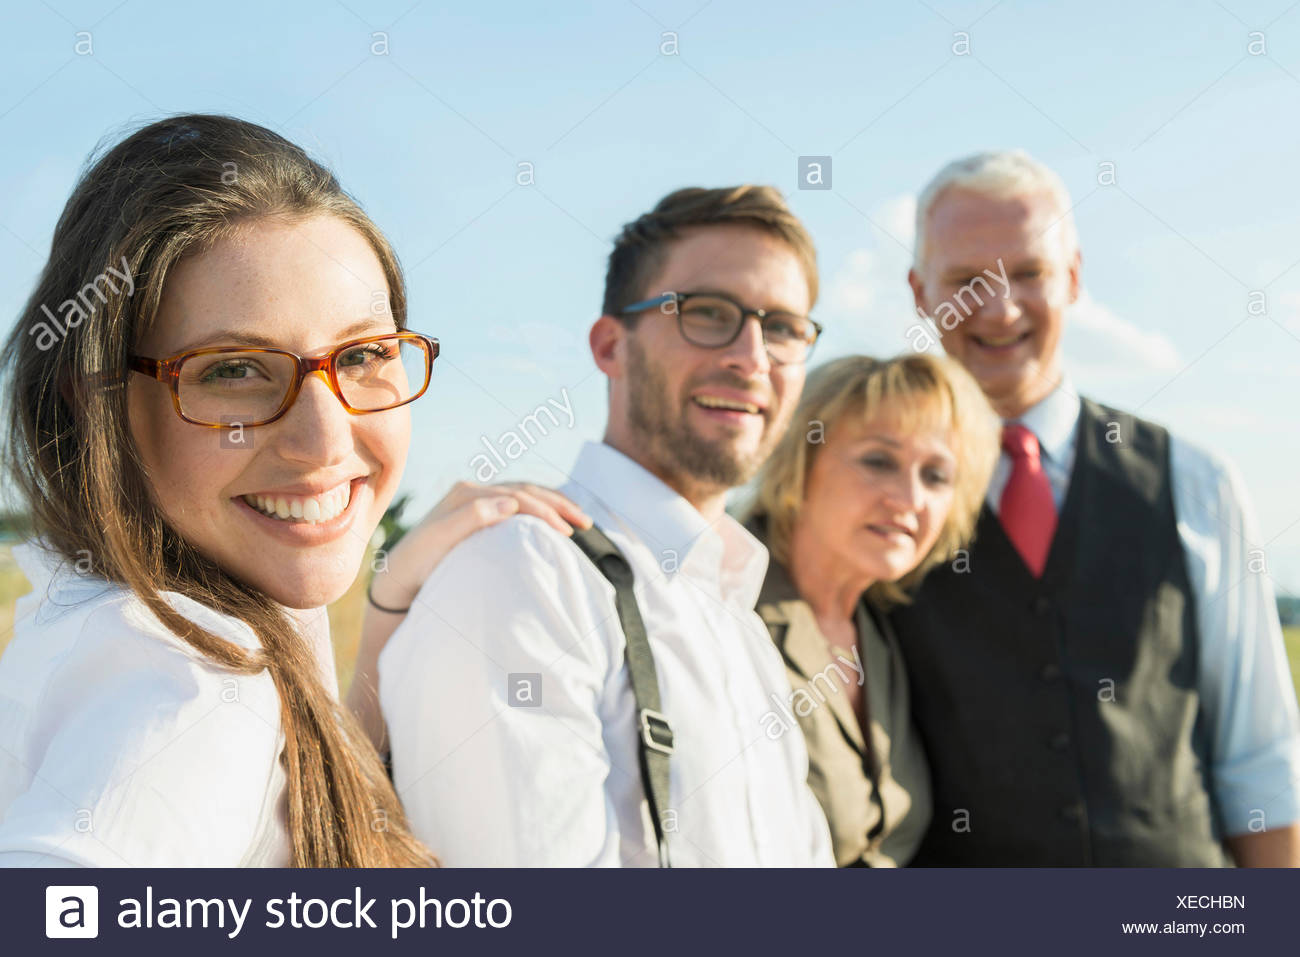 Smiling young woman with three other people outdoors, portrait - Stock Image